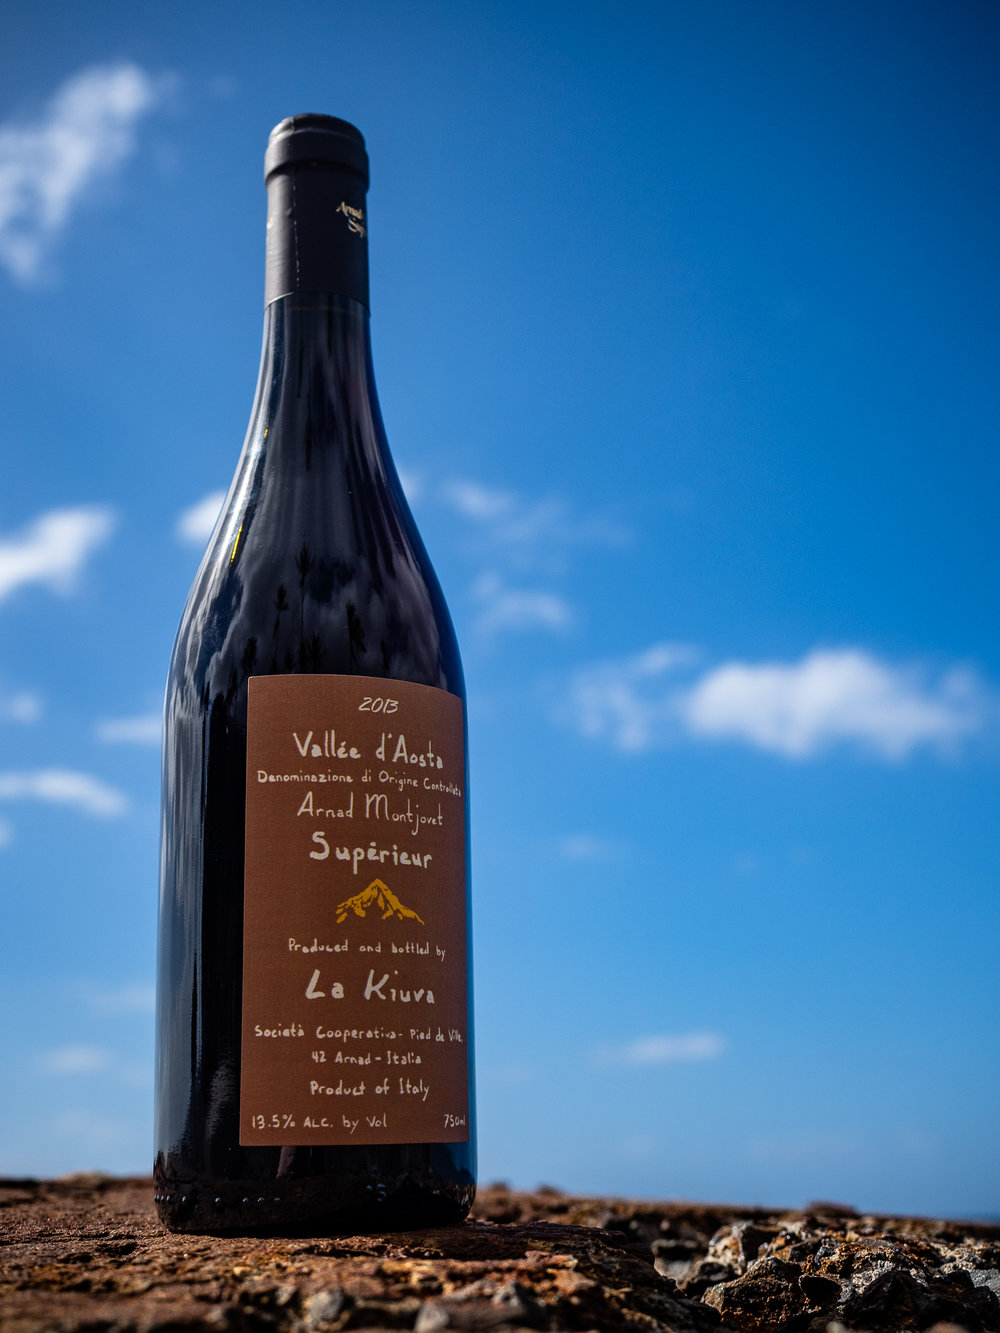 Musings by the Glass - Arnad Montjoret Nebbiolo